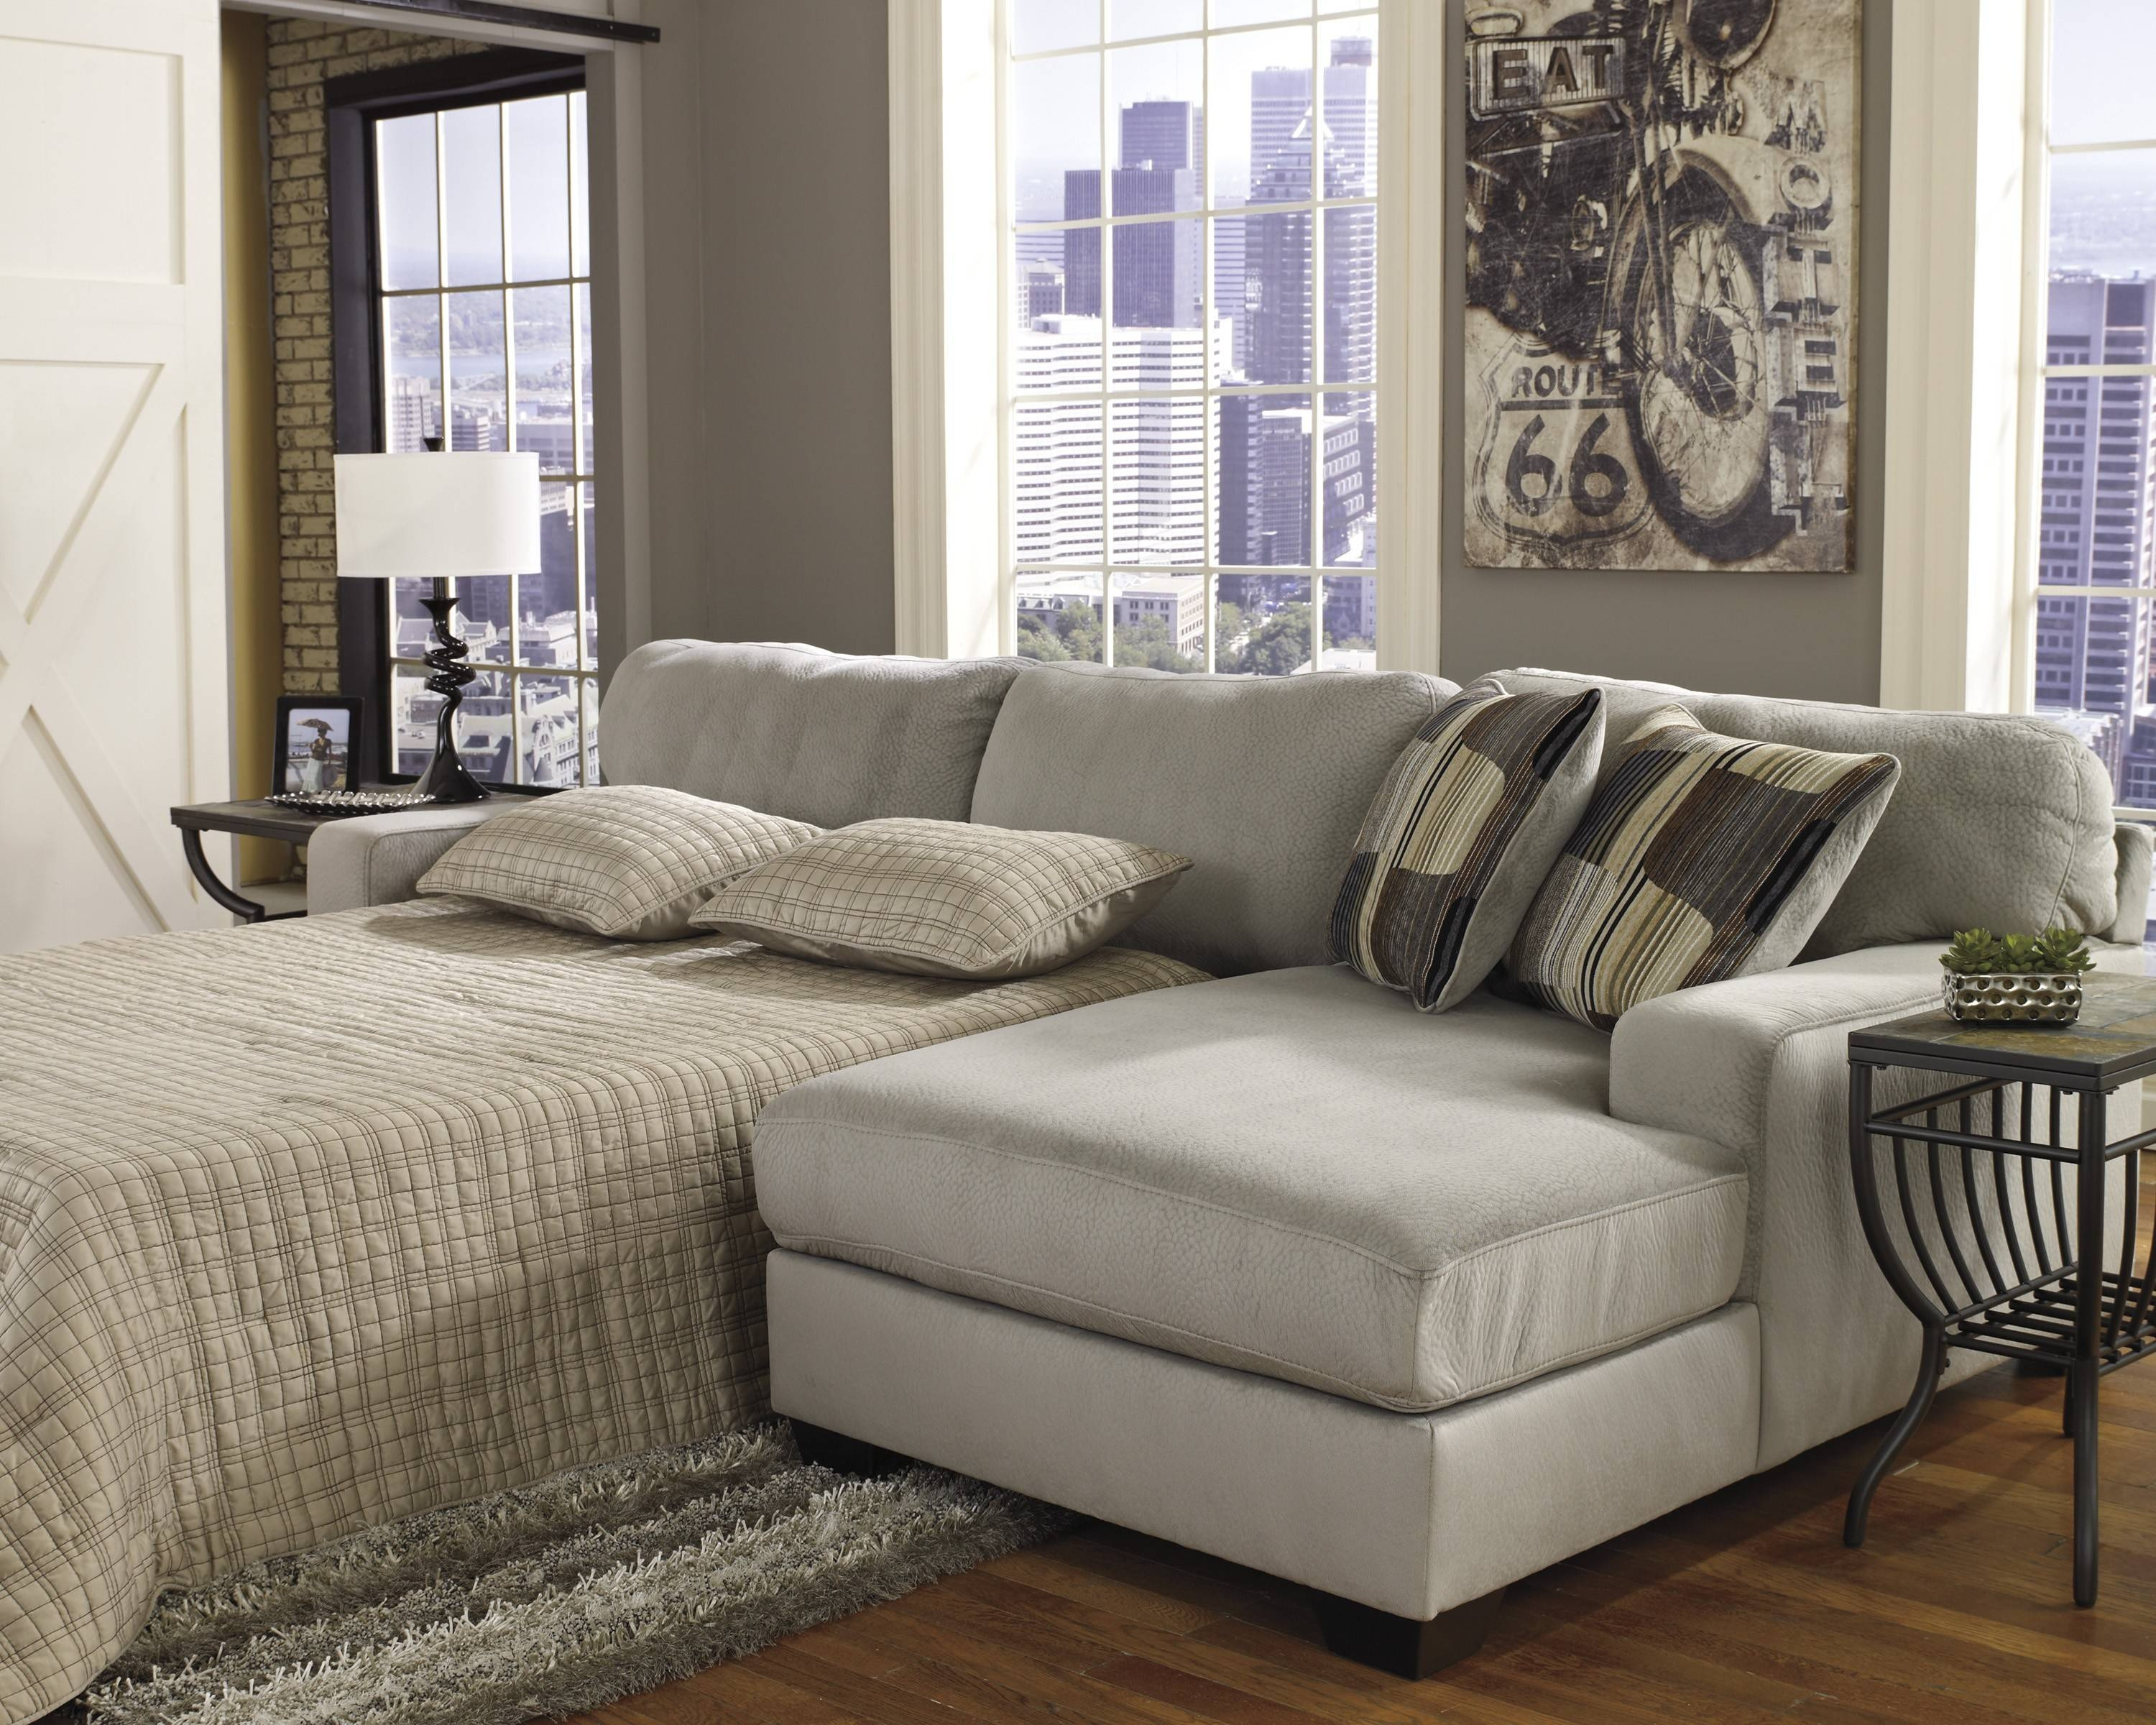 Astounding Small Sectional Sleeper Sofa Chaise 99 In Large Within Large Comfortable  Sectional Sofas (Image